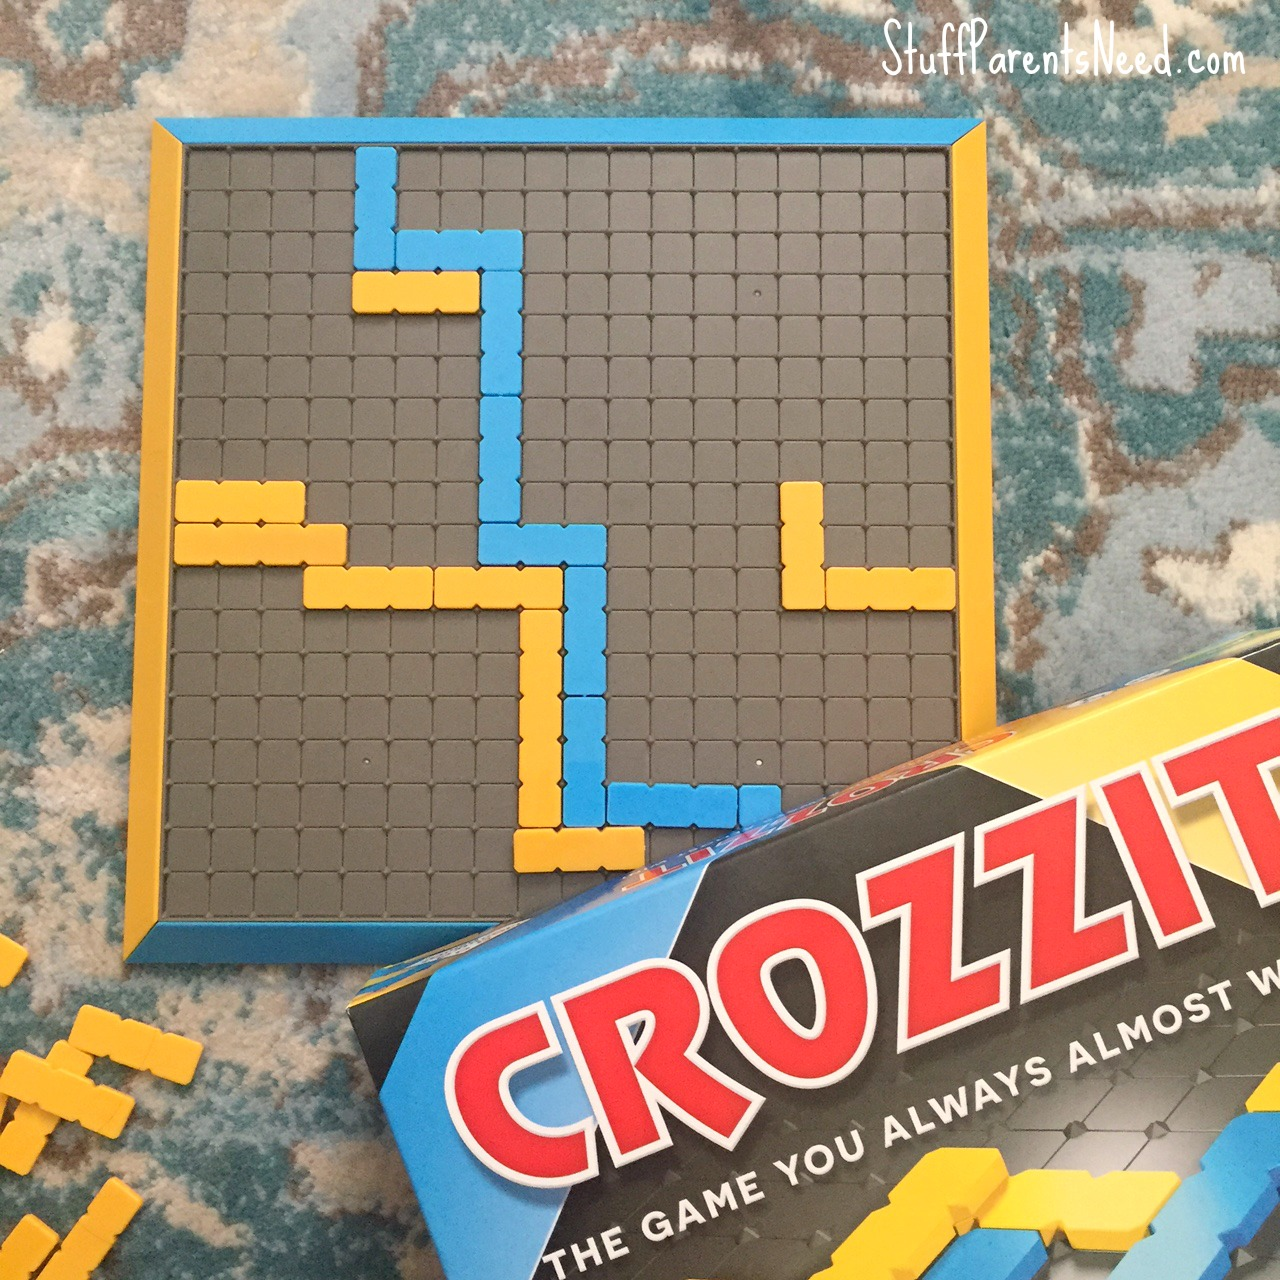 crozzit board game